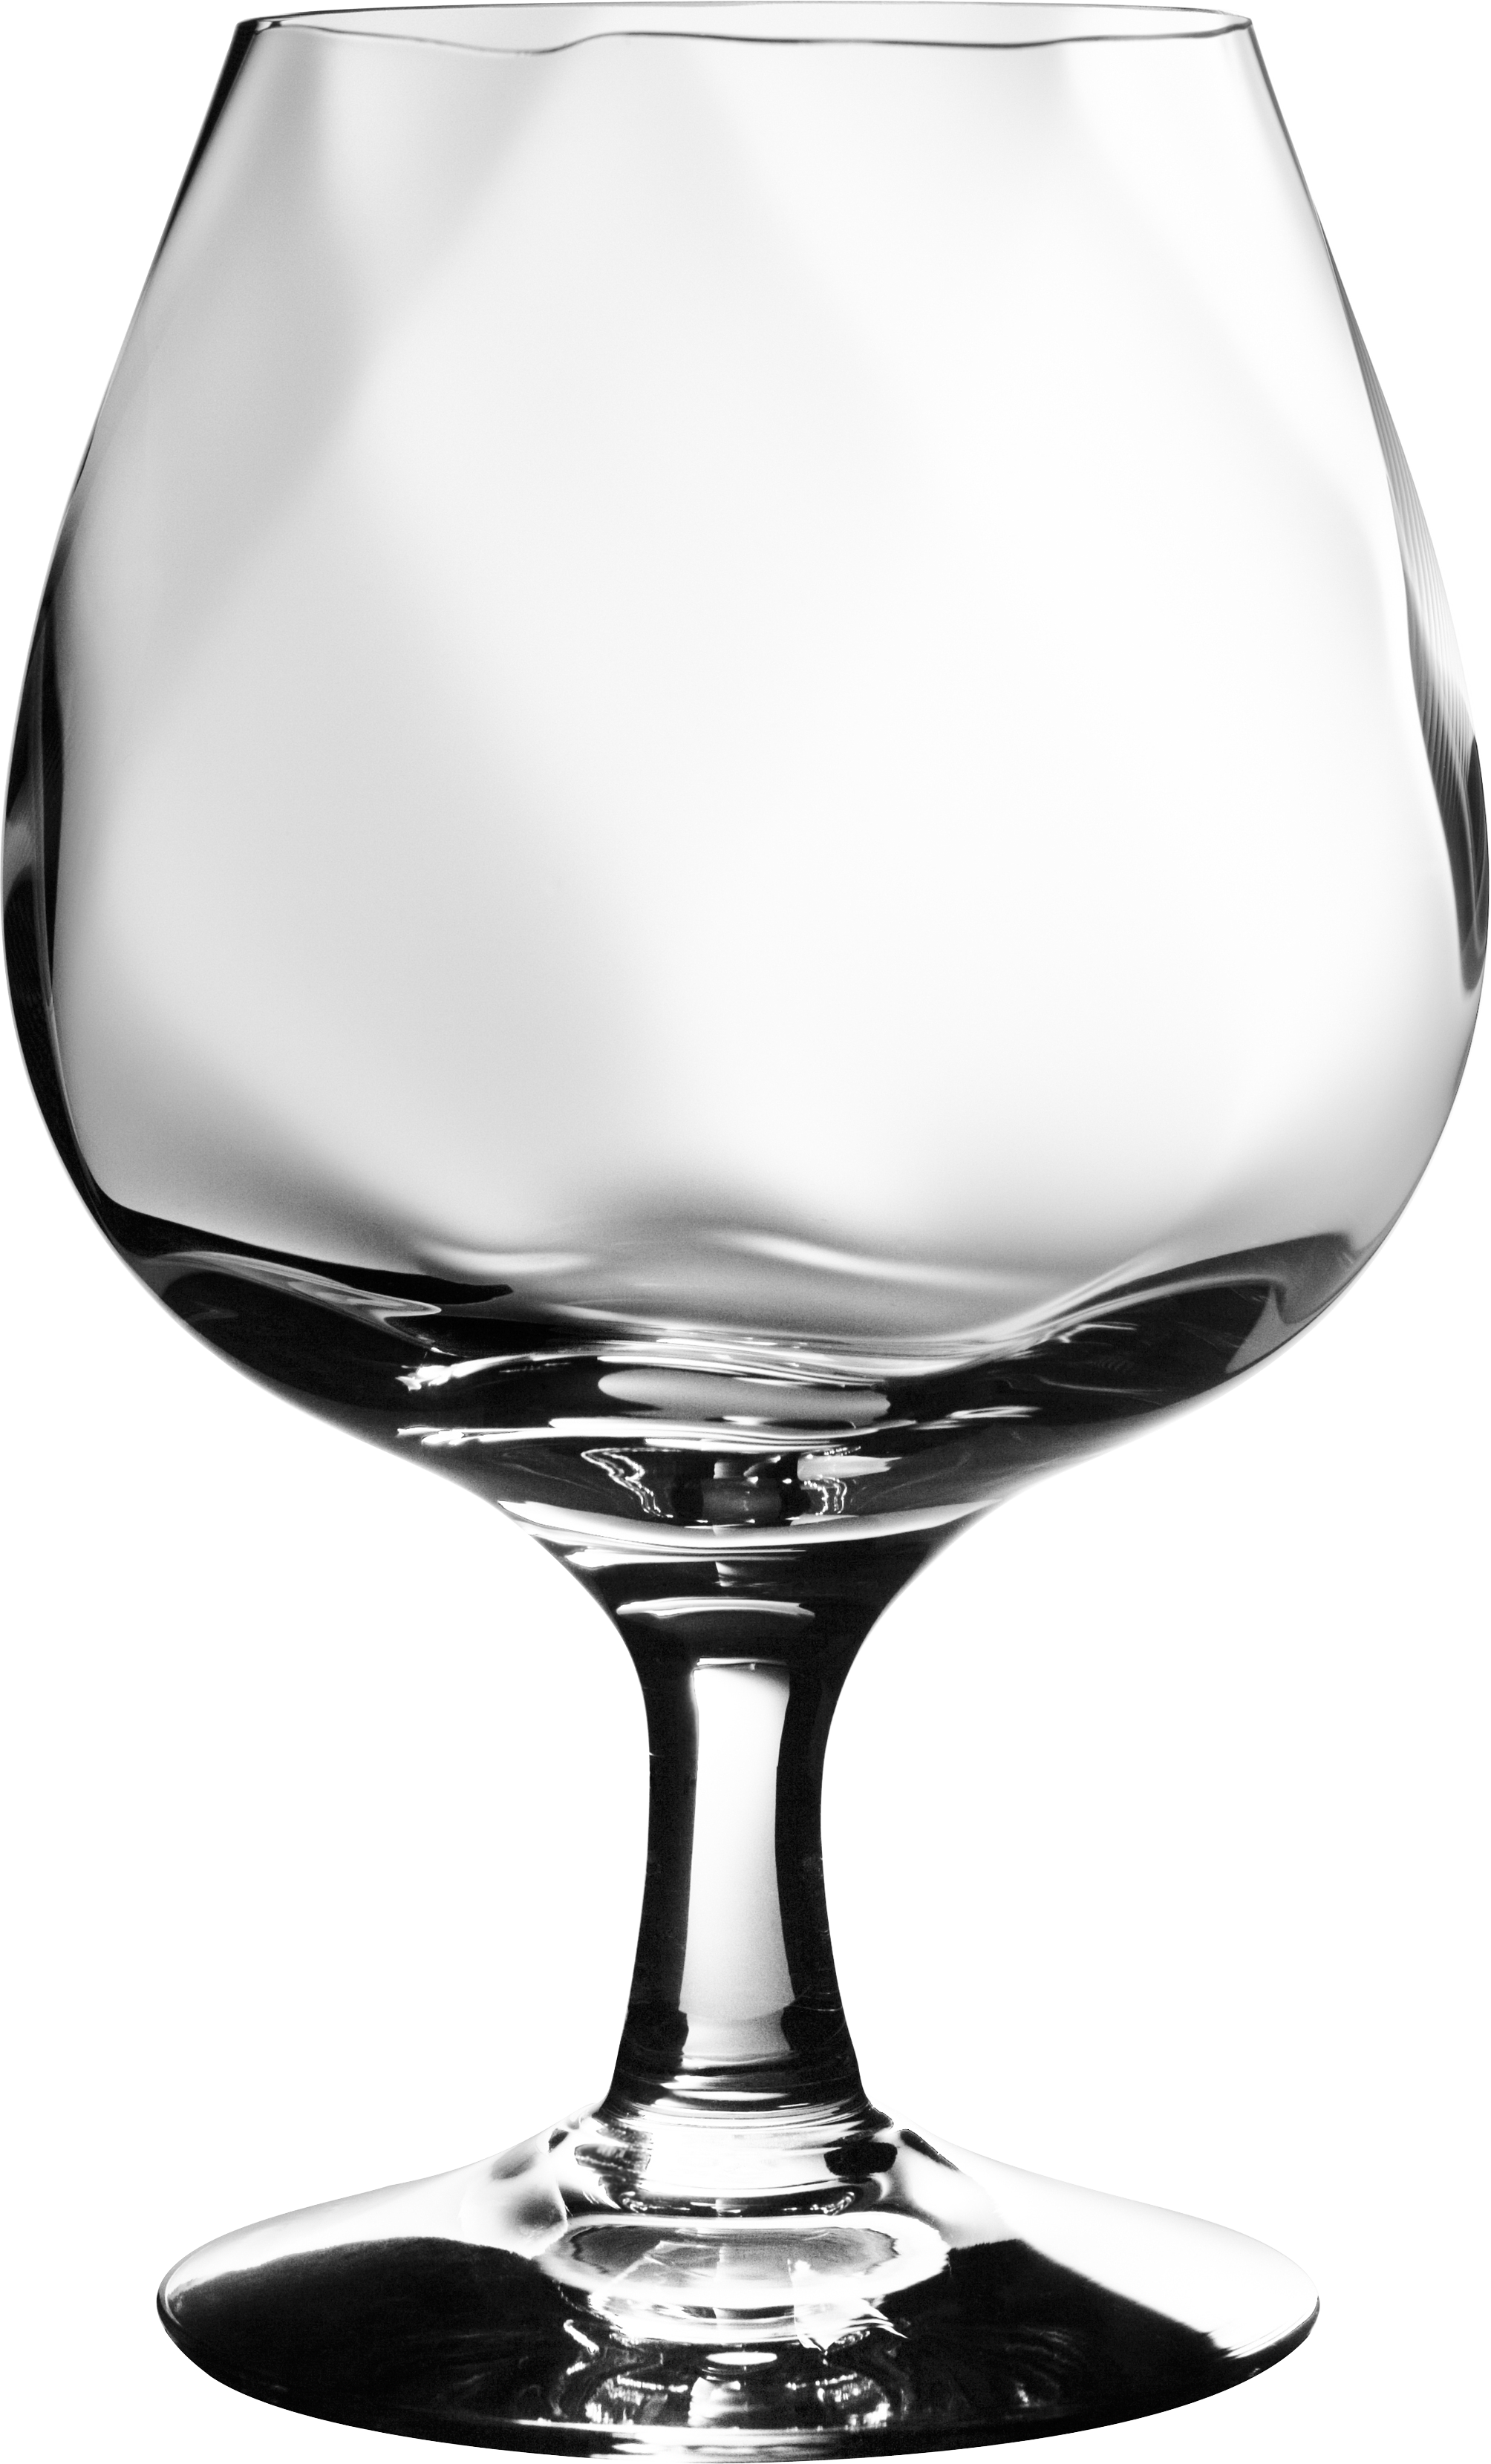 Wine Glass Png Image Purepng Free Transparent Cc0 Png